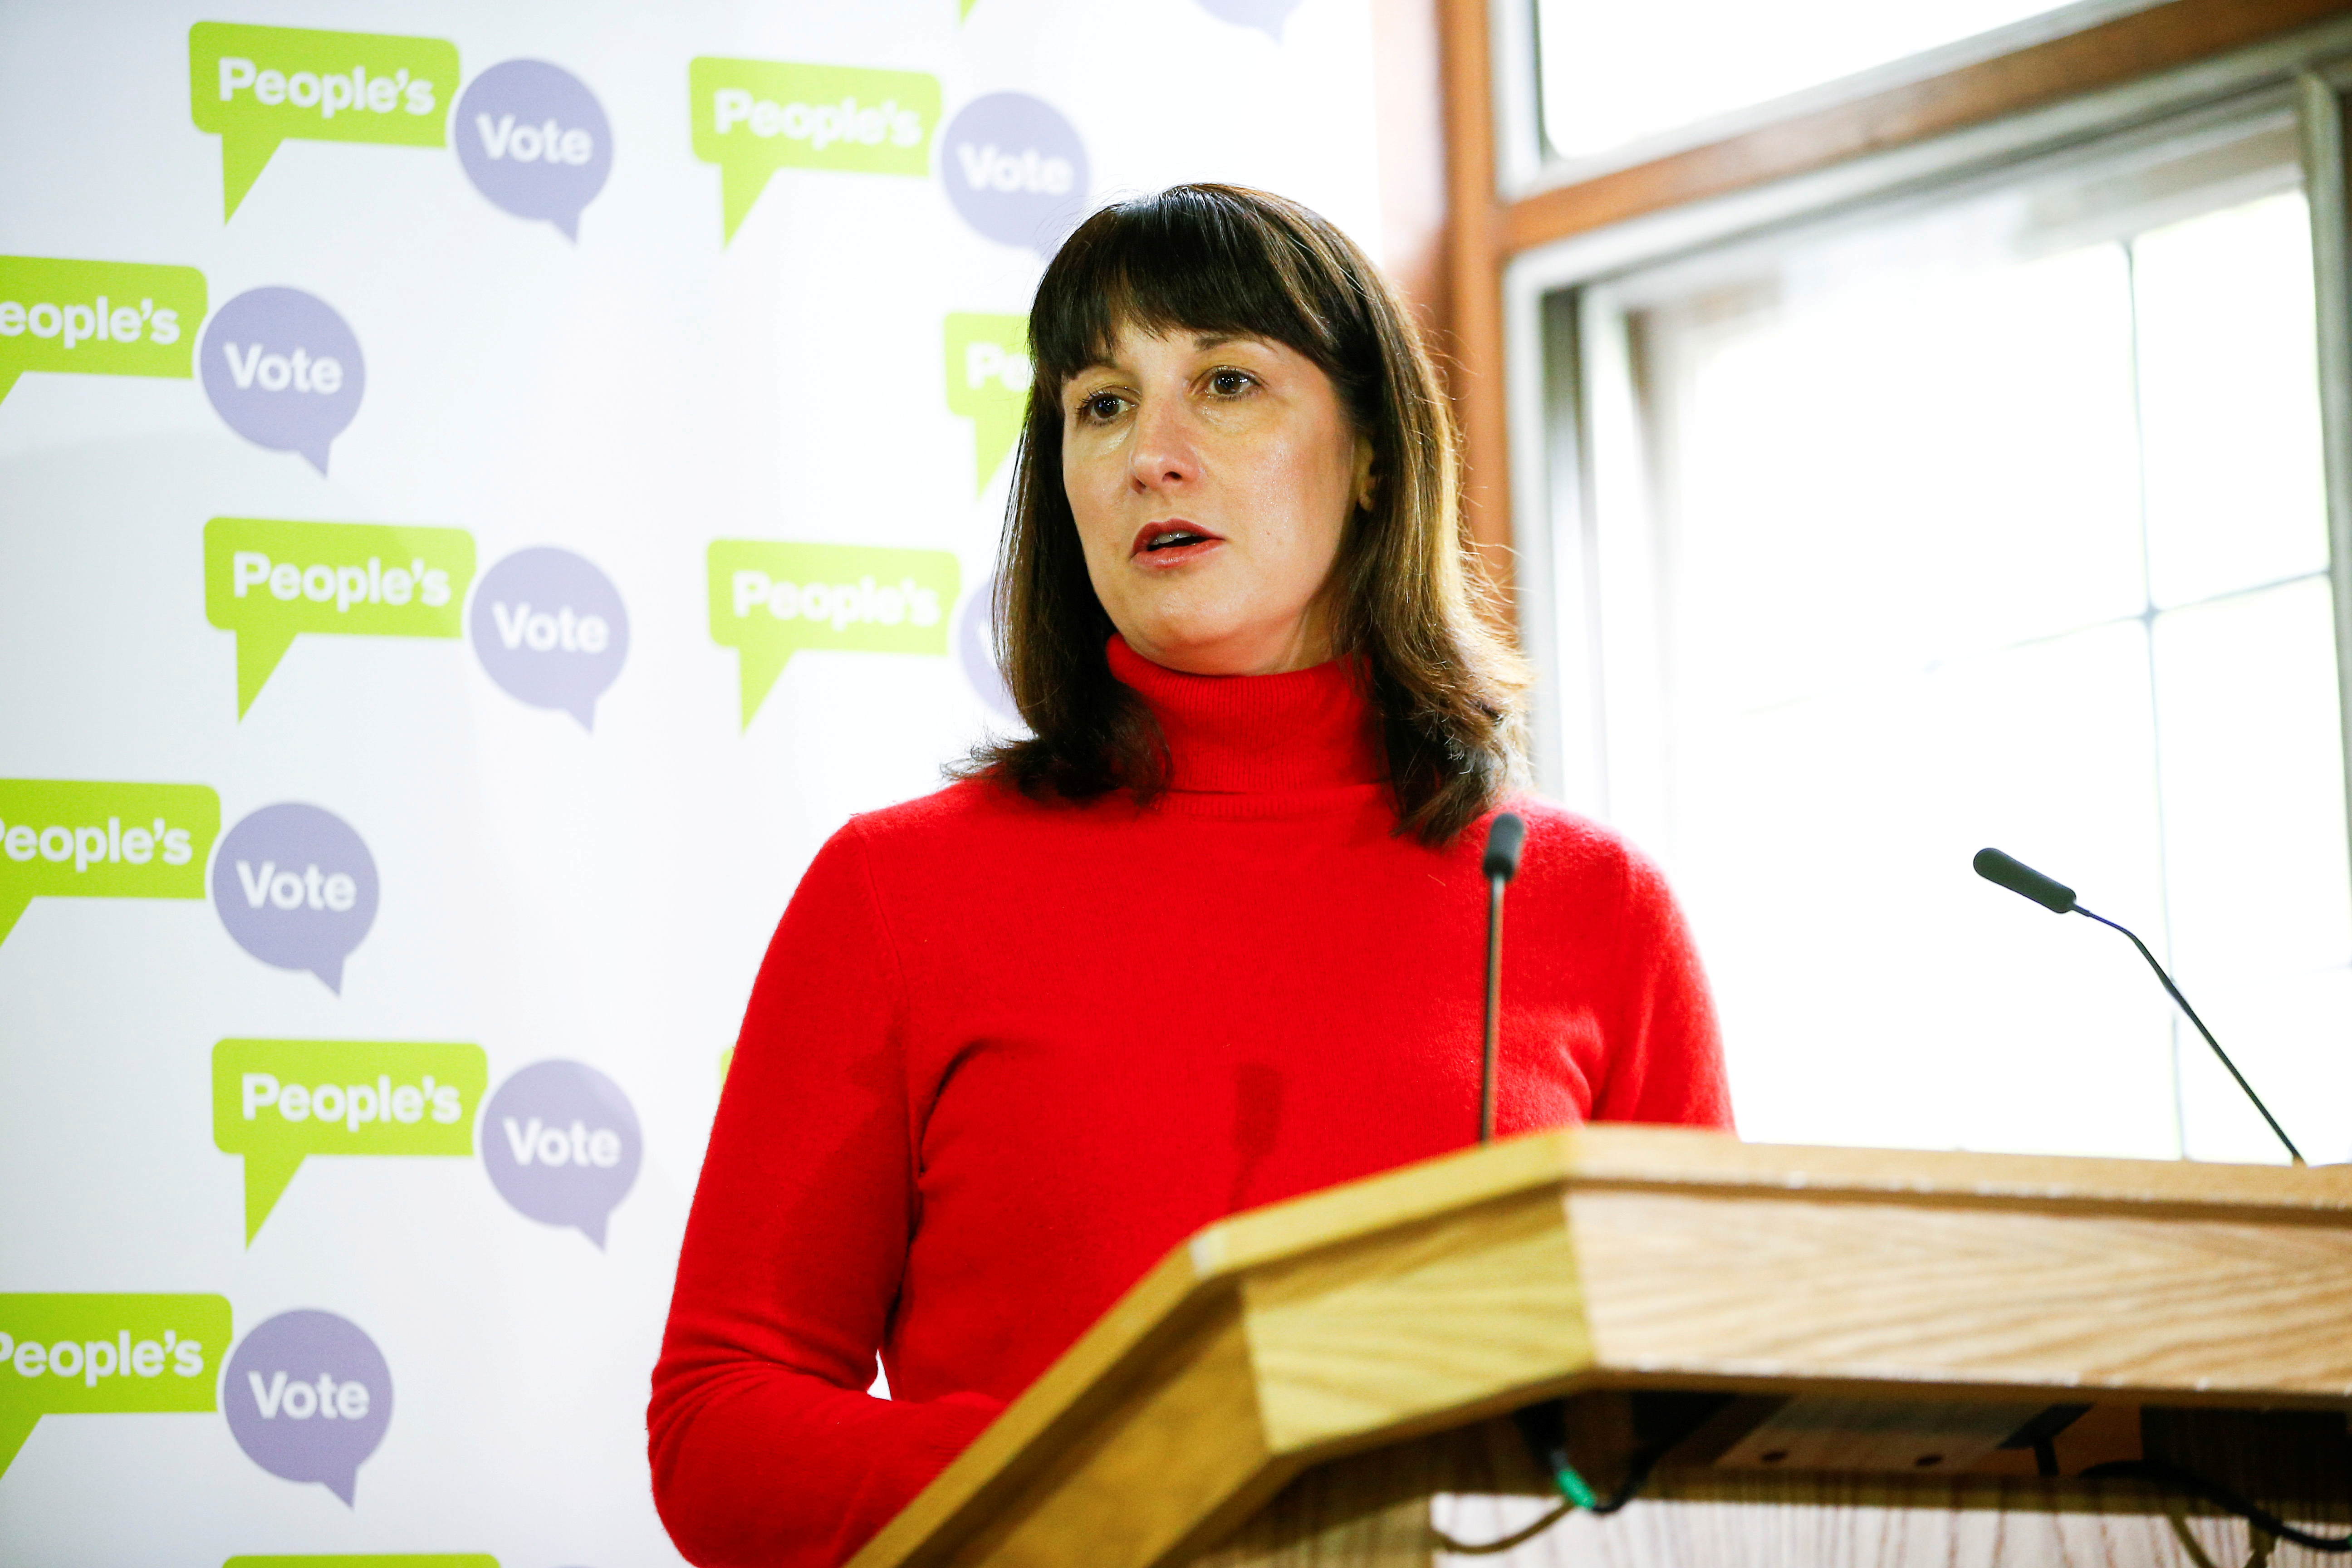 Labour politician Rachel Reeves speaks during a People's Vote press conference at the National Institute of Economic and Social Research in London, Britain May 9, 2019.  REUTERS/Henry Nicholls/File Photo